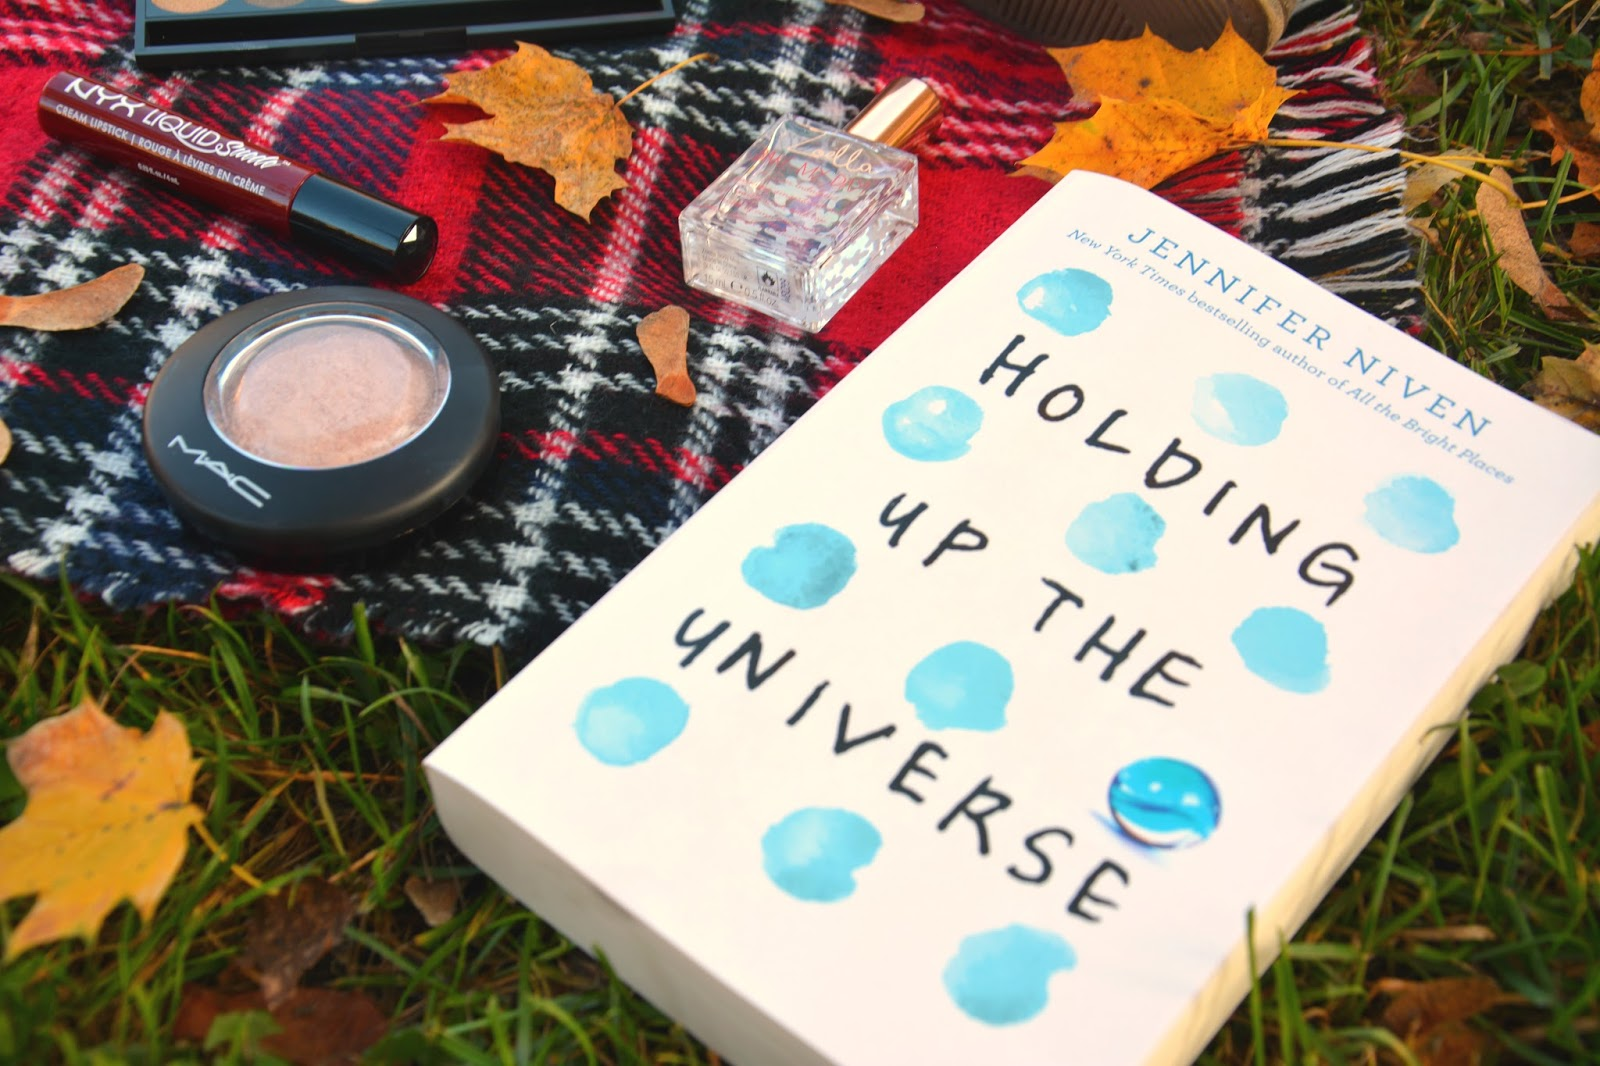 Holding Up the Universe Book, Mac Soft & Gentle Highlighter, NYX Liquid Suede Cherry Skies, Zoella Bake My Day Body Mist, Primark Blanket Scarf